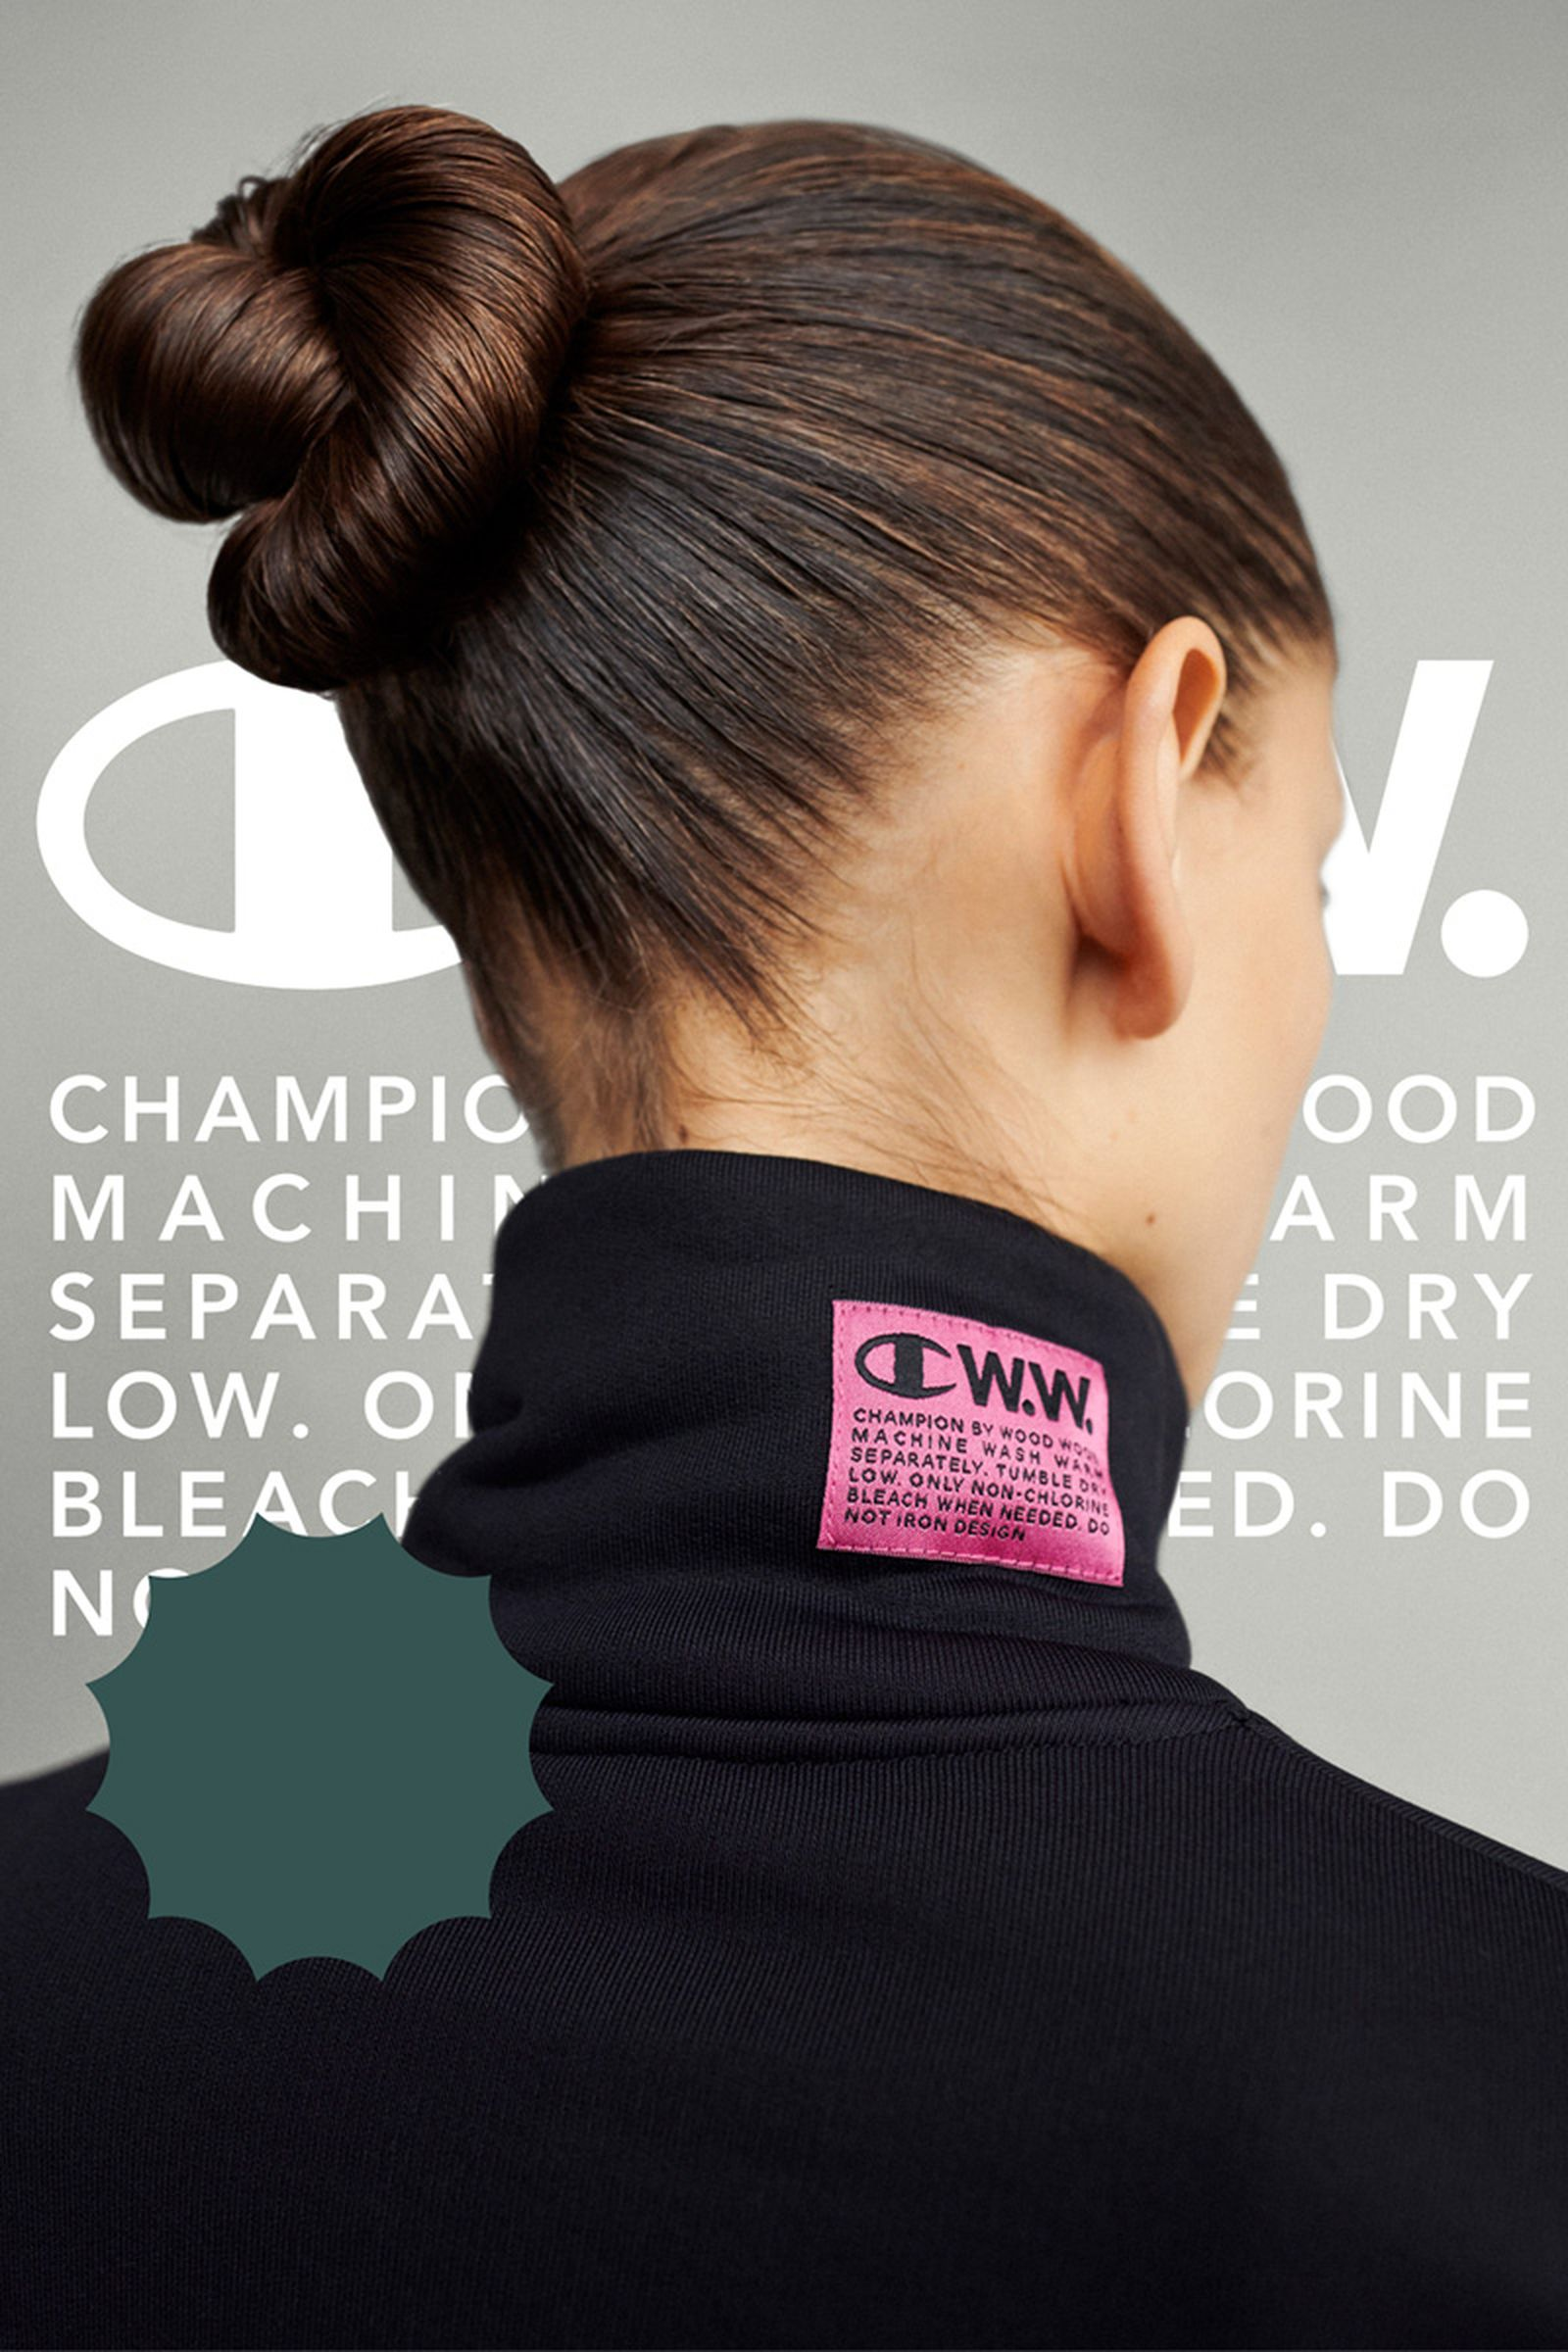 wood wood champion capsule collection Champion x Wood Wood